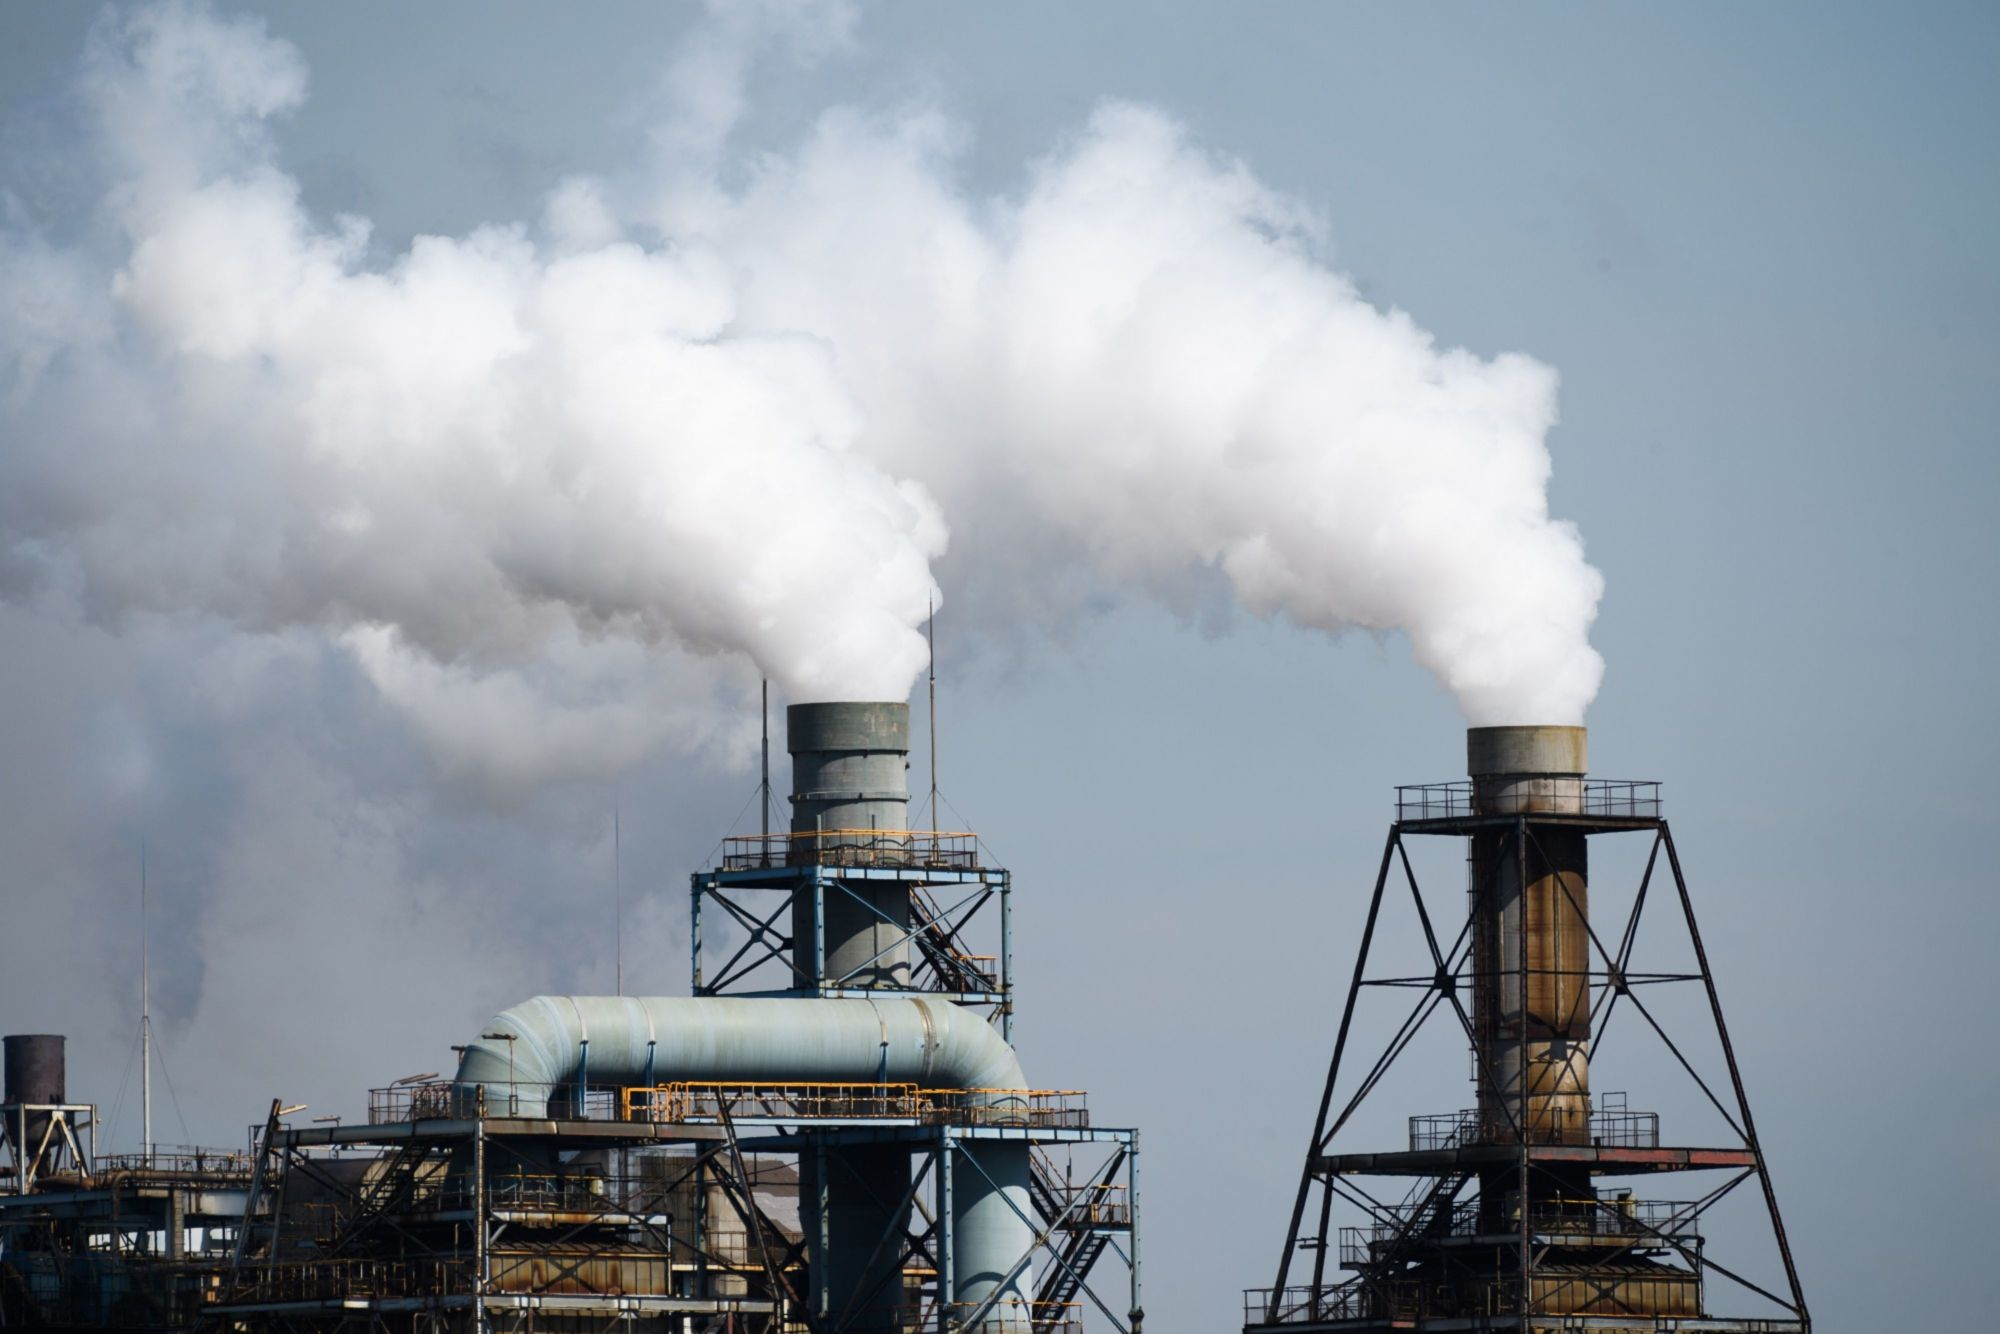 Steam rises from stacks in the Keihin industrial area of Kawasaki in September. | BLOOMBERG